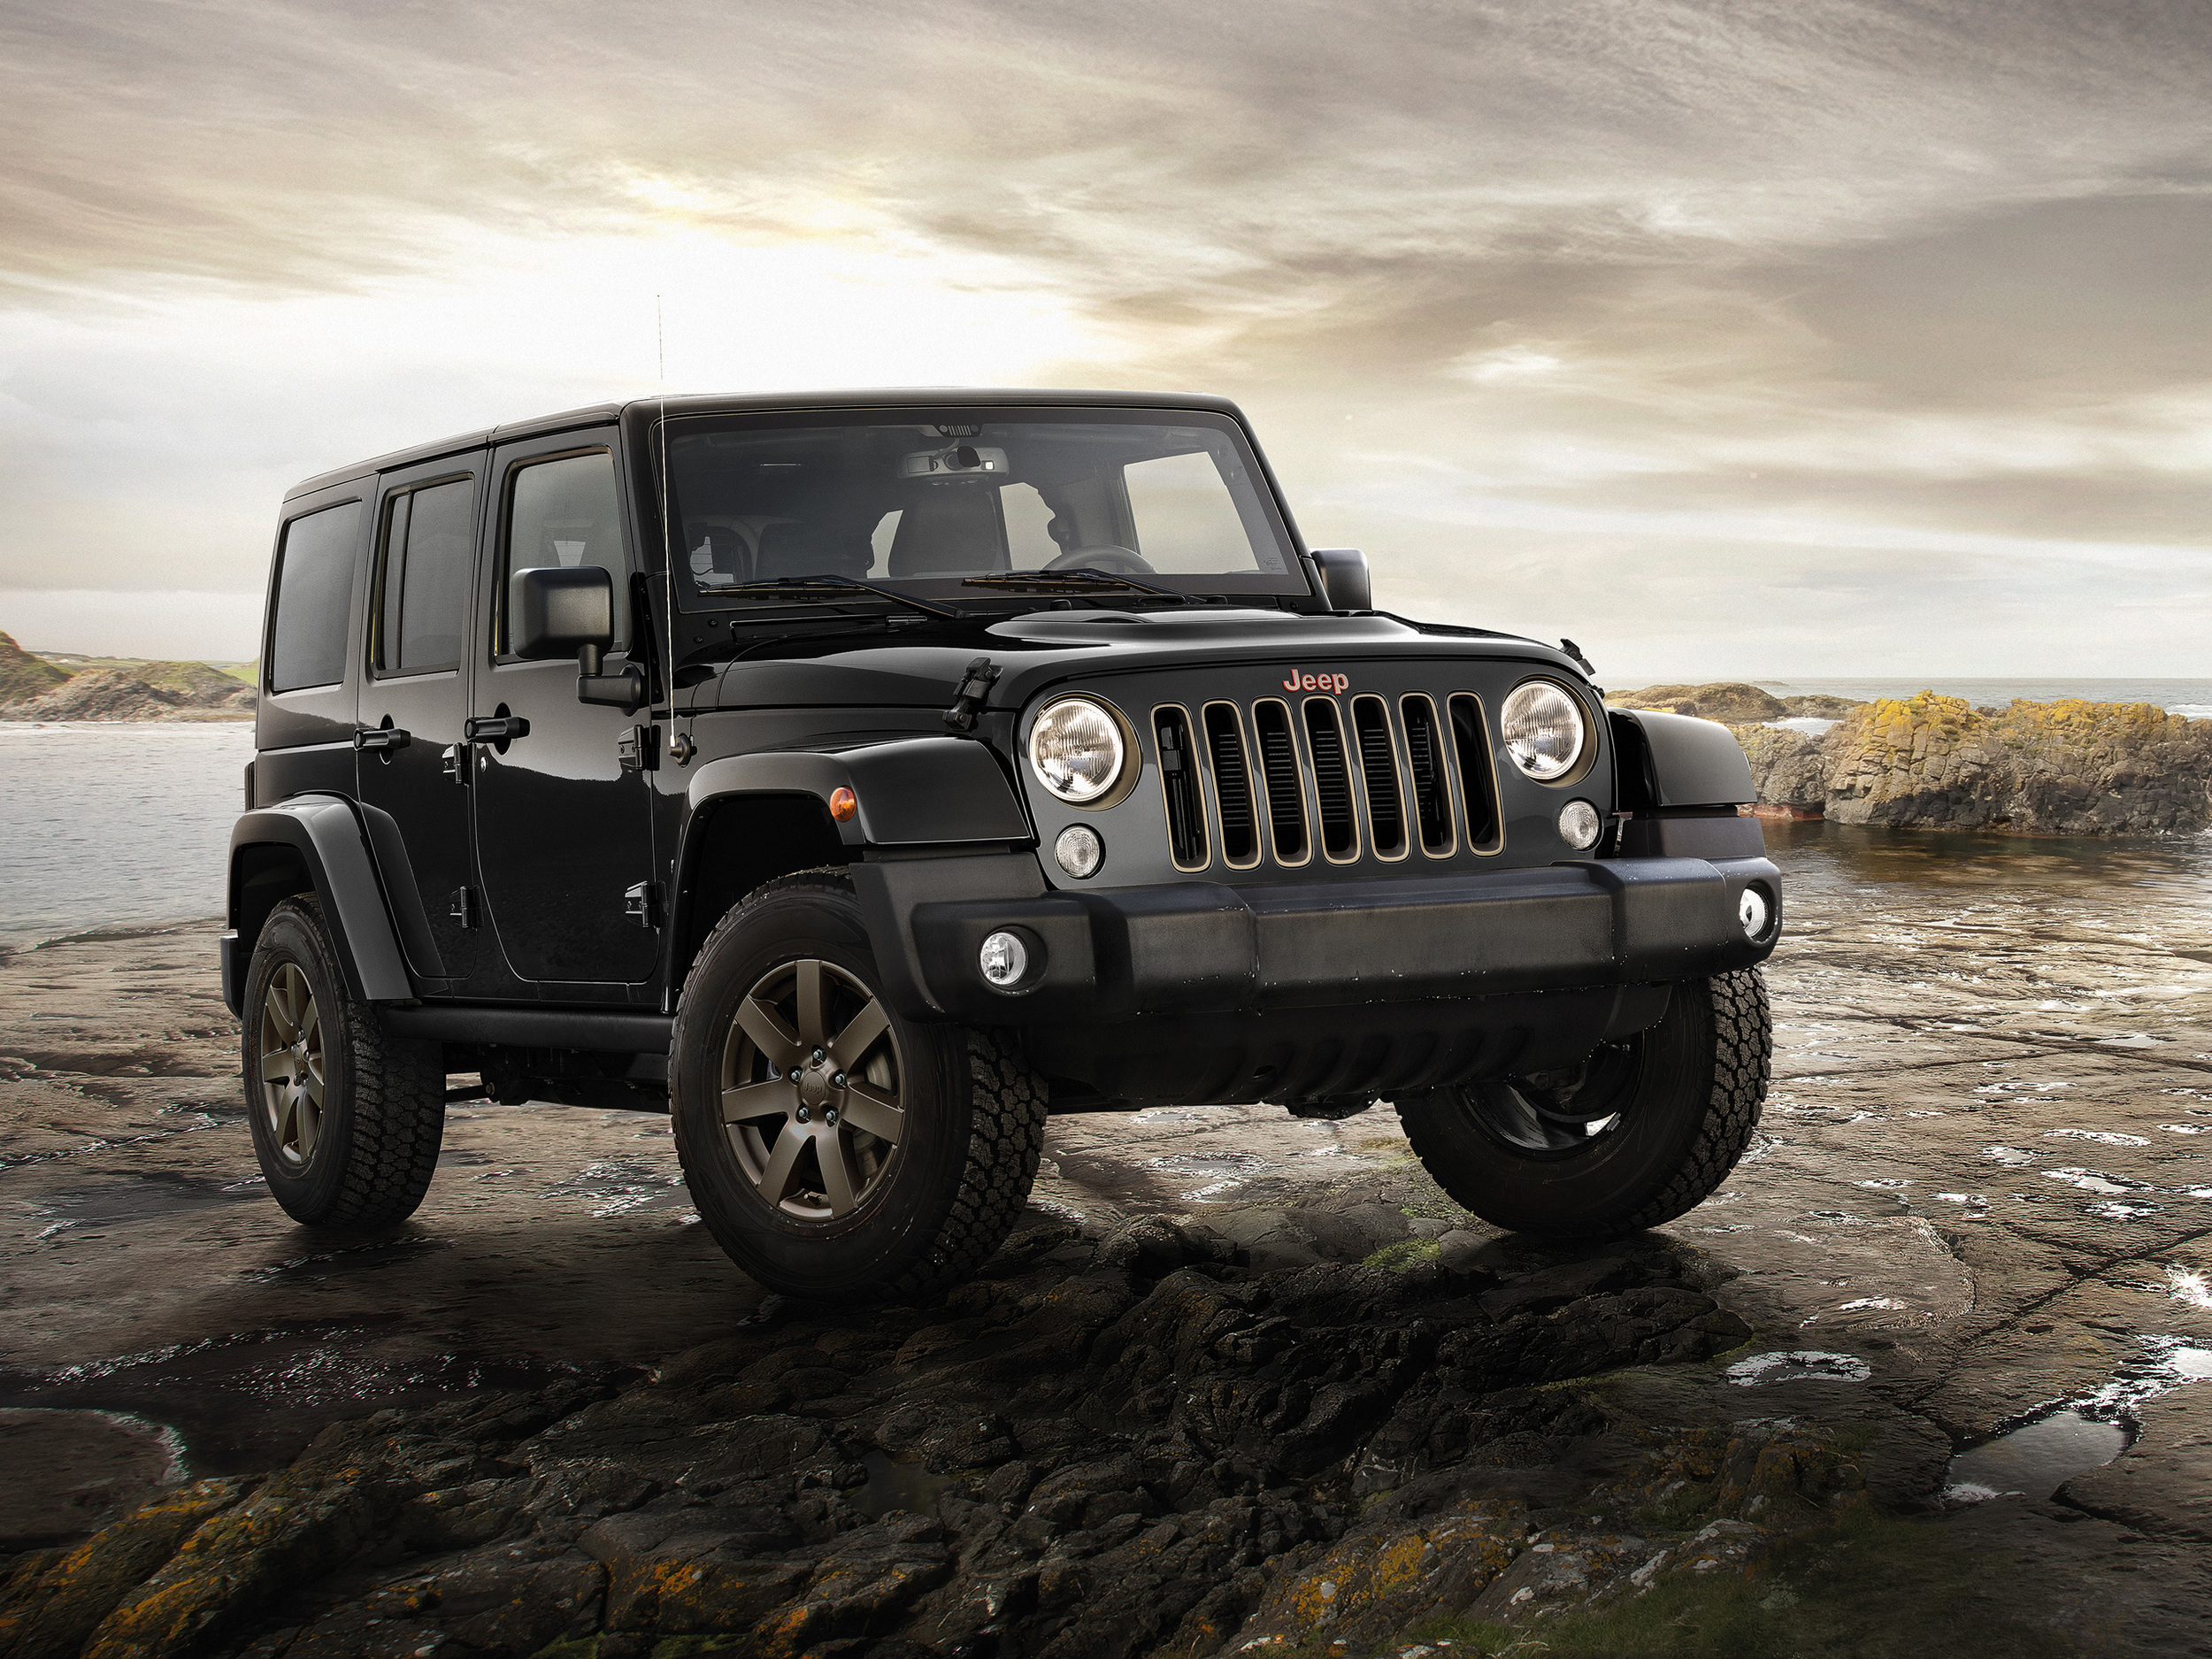 160224_Jeep_Wrangler_75th_Anniversary_01.jpg